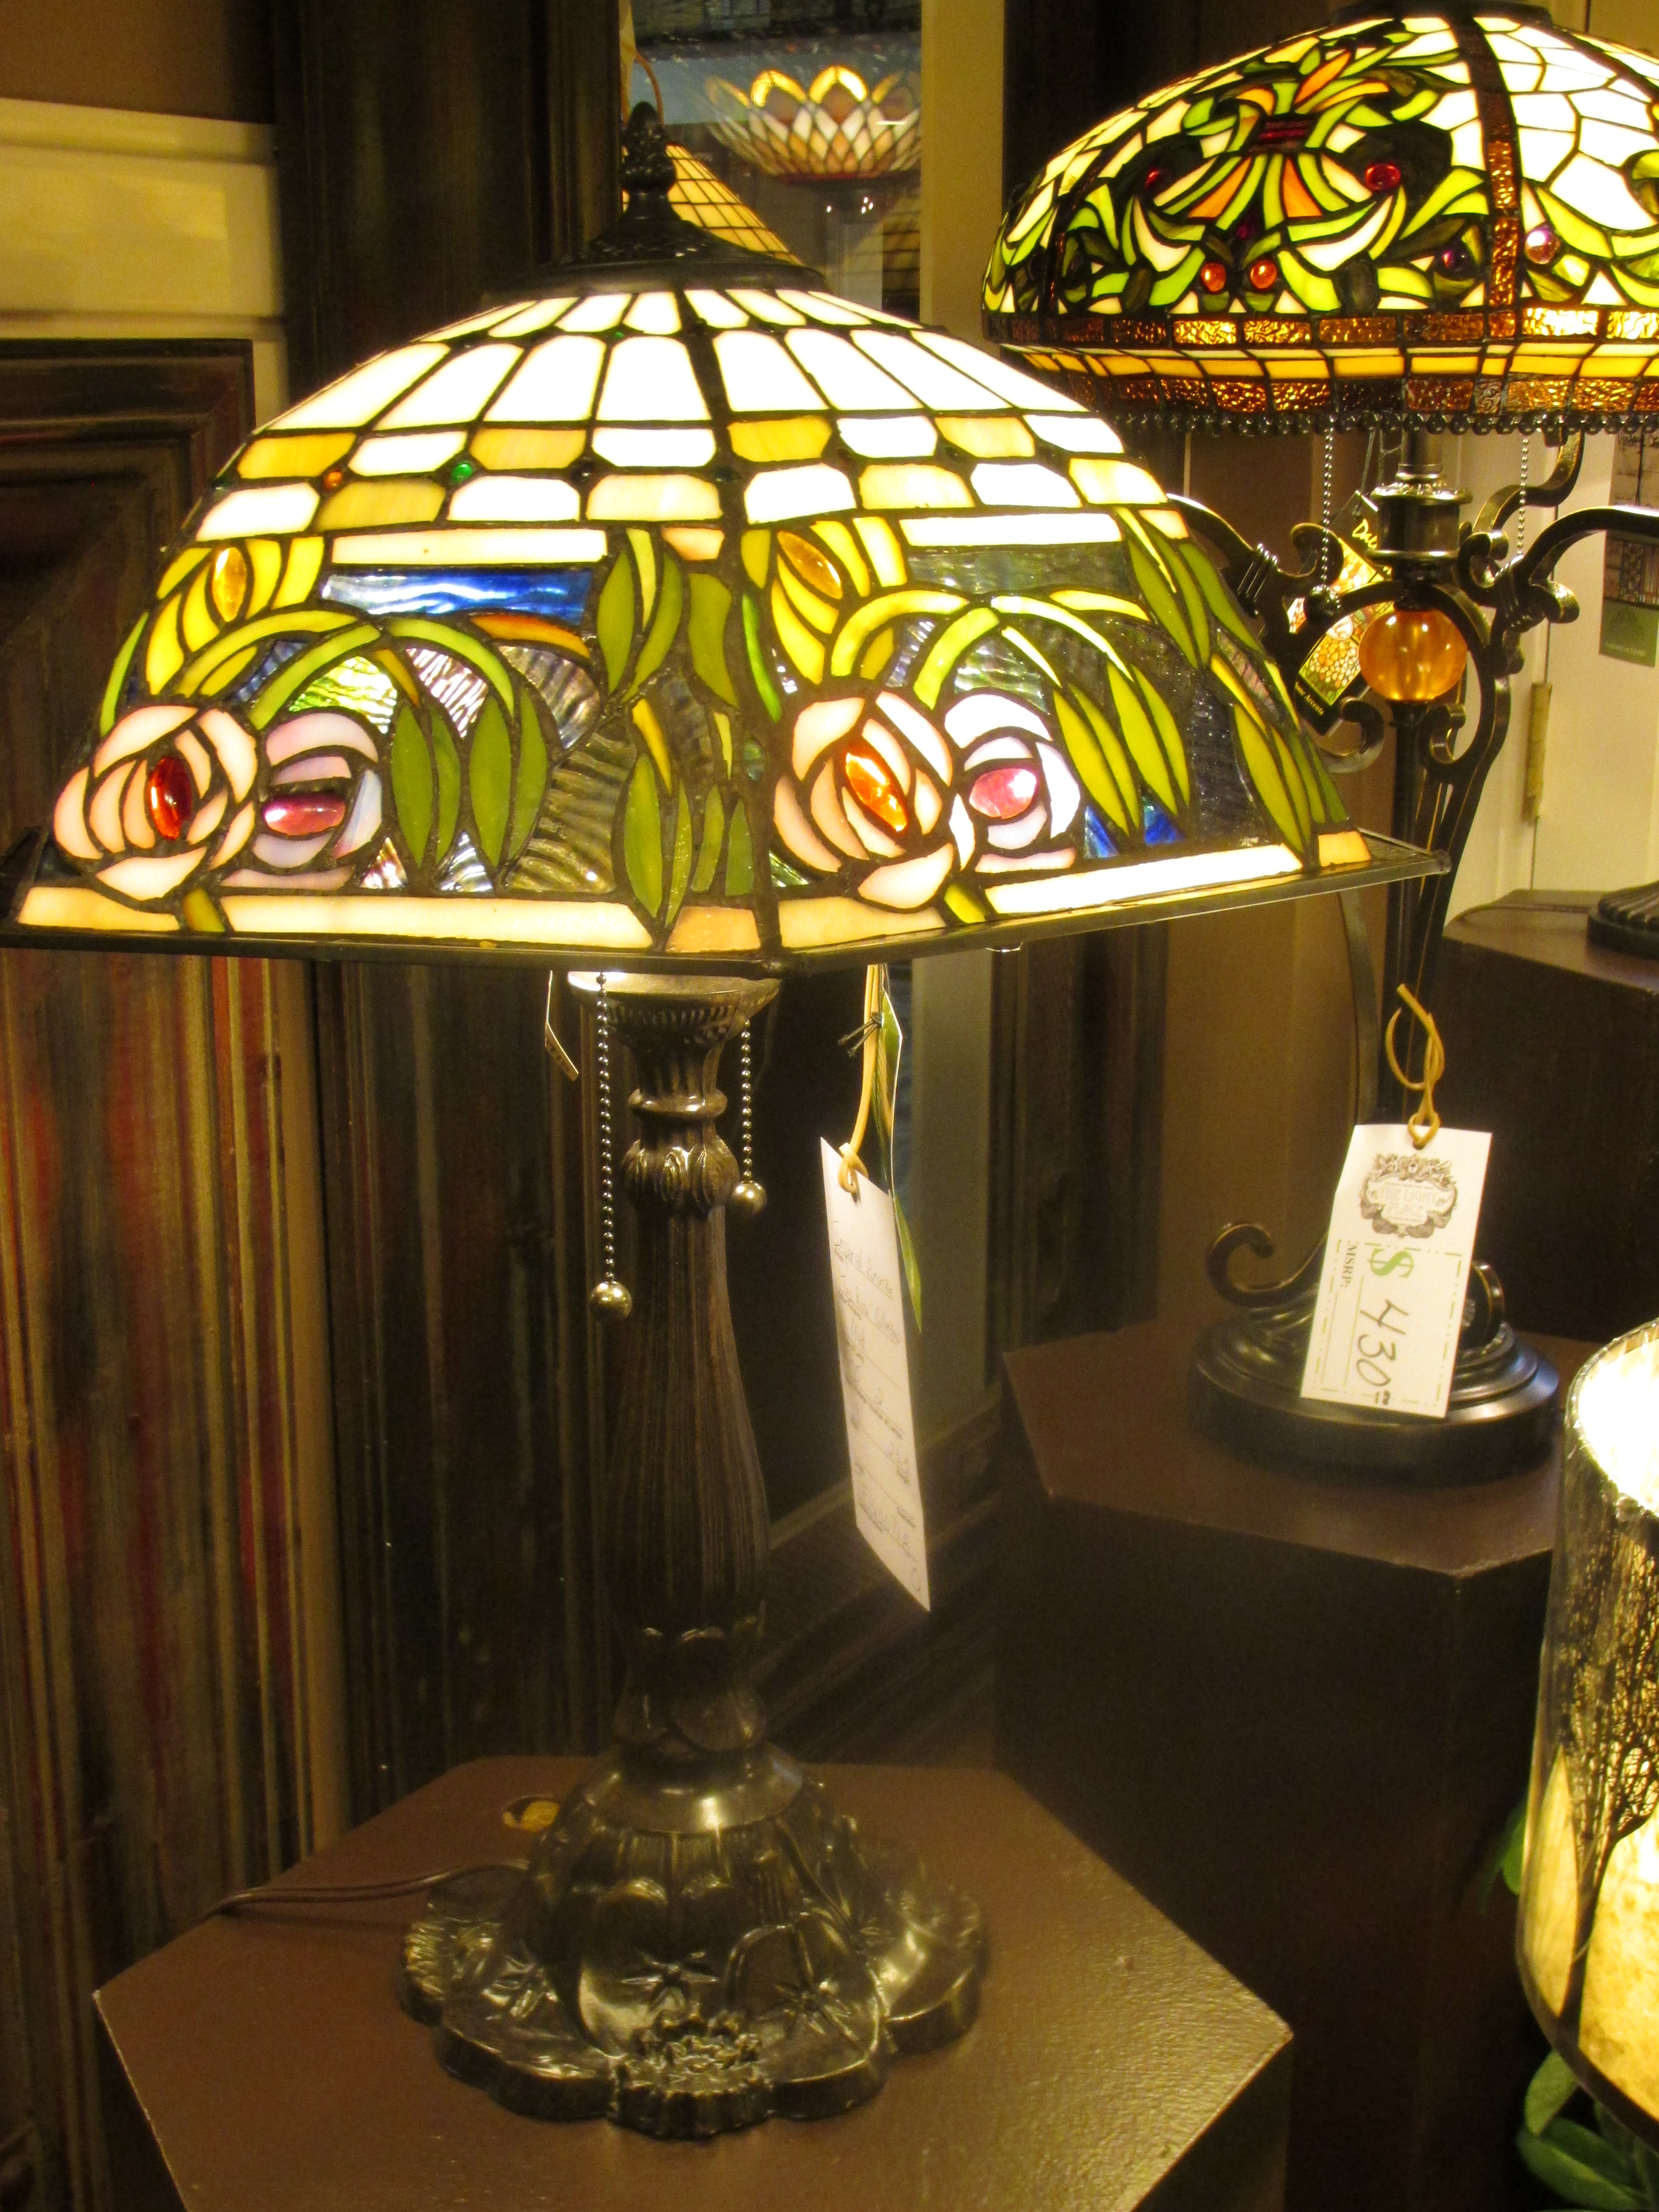 Stained glass Tiffany table lamp incorporates Radiant Orchid with sophistication and style. Visit The Light Place for all your indoor and outdoor lighting needs.